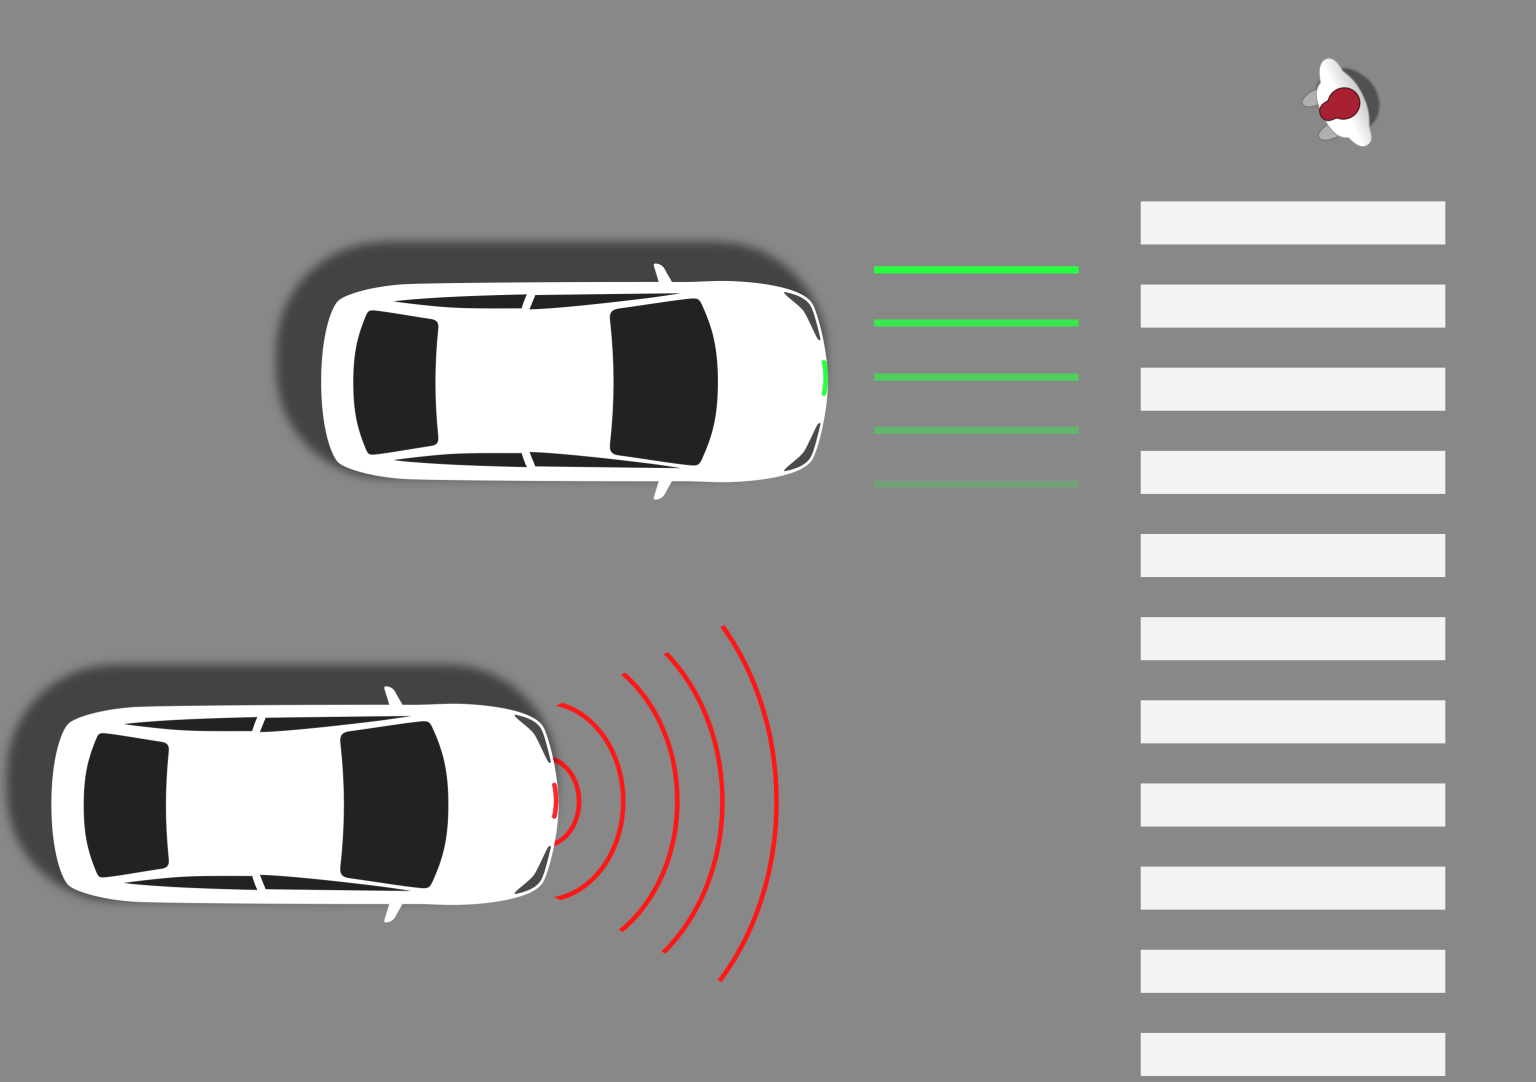 Designing for trust between autonomous cars and human